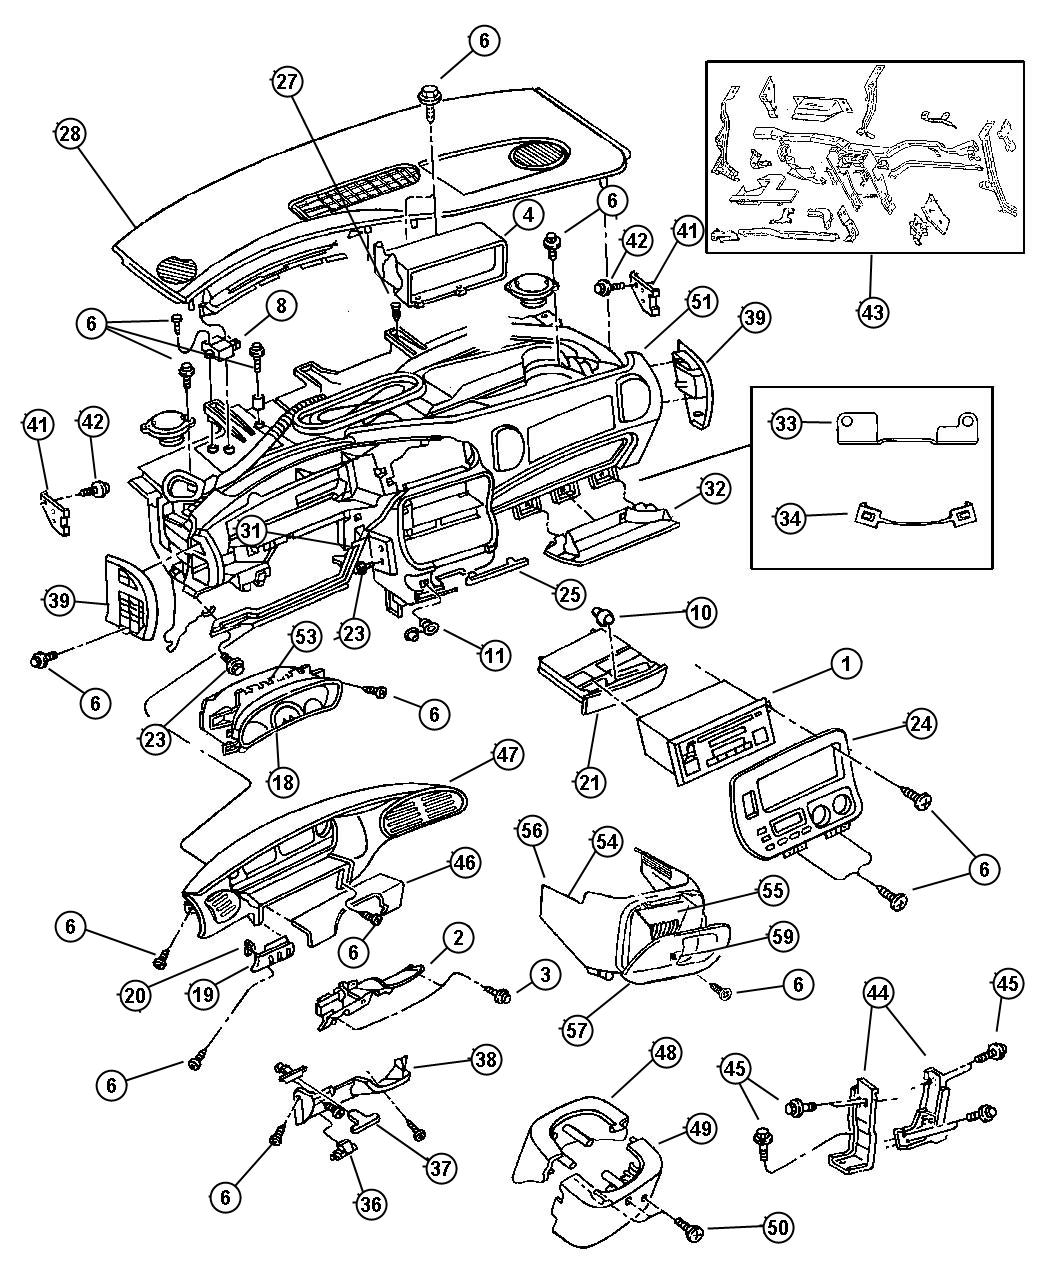 2000 Chrysler 300m Cooling System Diagram Schematics Lhs Fuse Voyager Wiring 1997 Circuit Schematic Town And Country